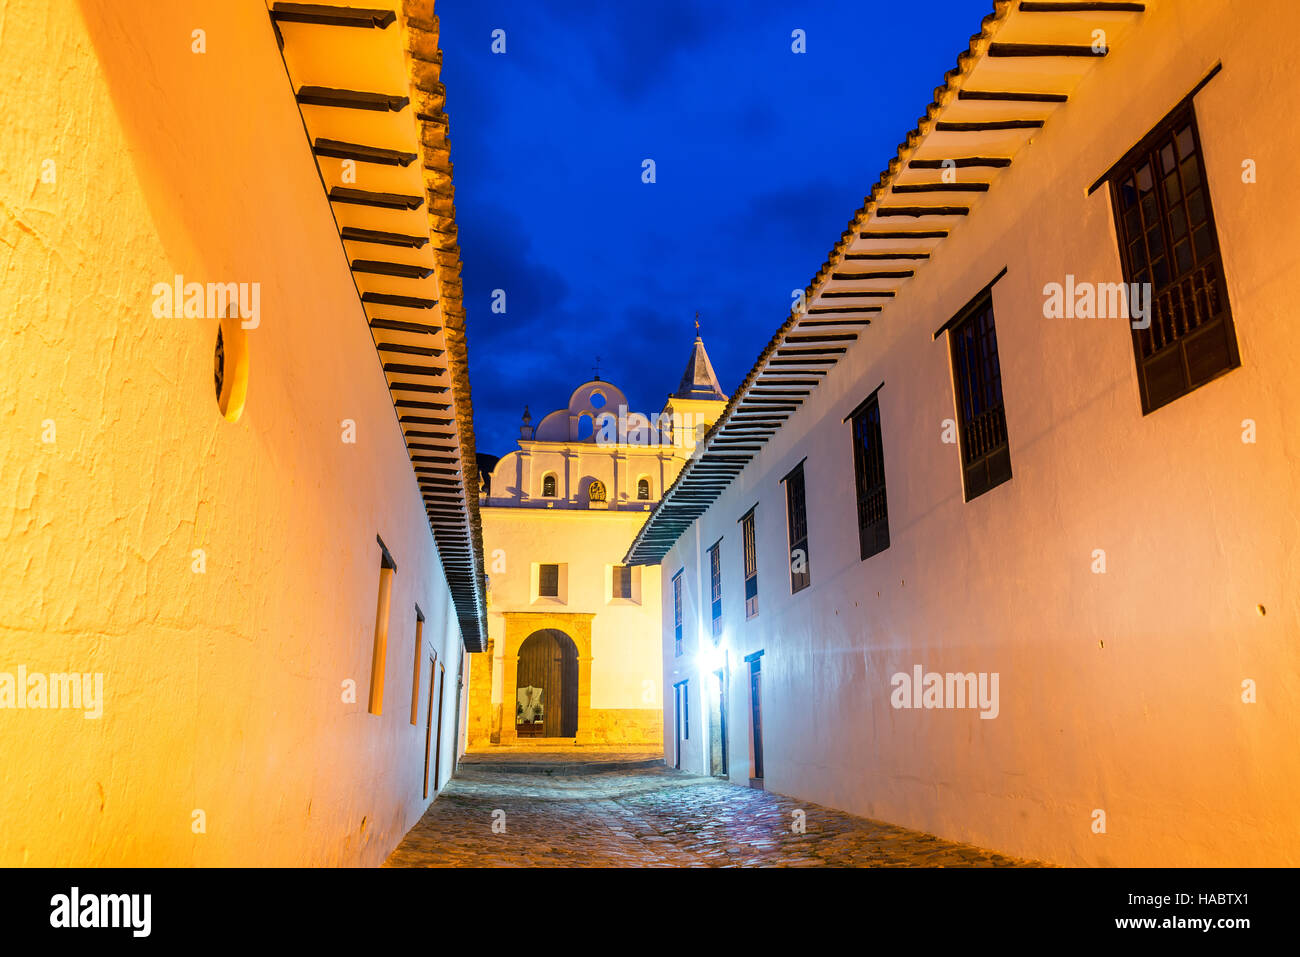 Church and convent of San Francisco taken during the blue hour in Villa de Leyva, Colombia - Stock Image